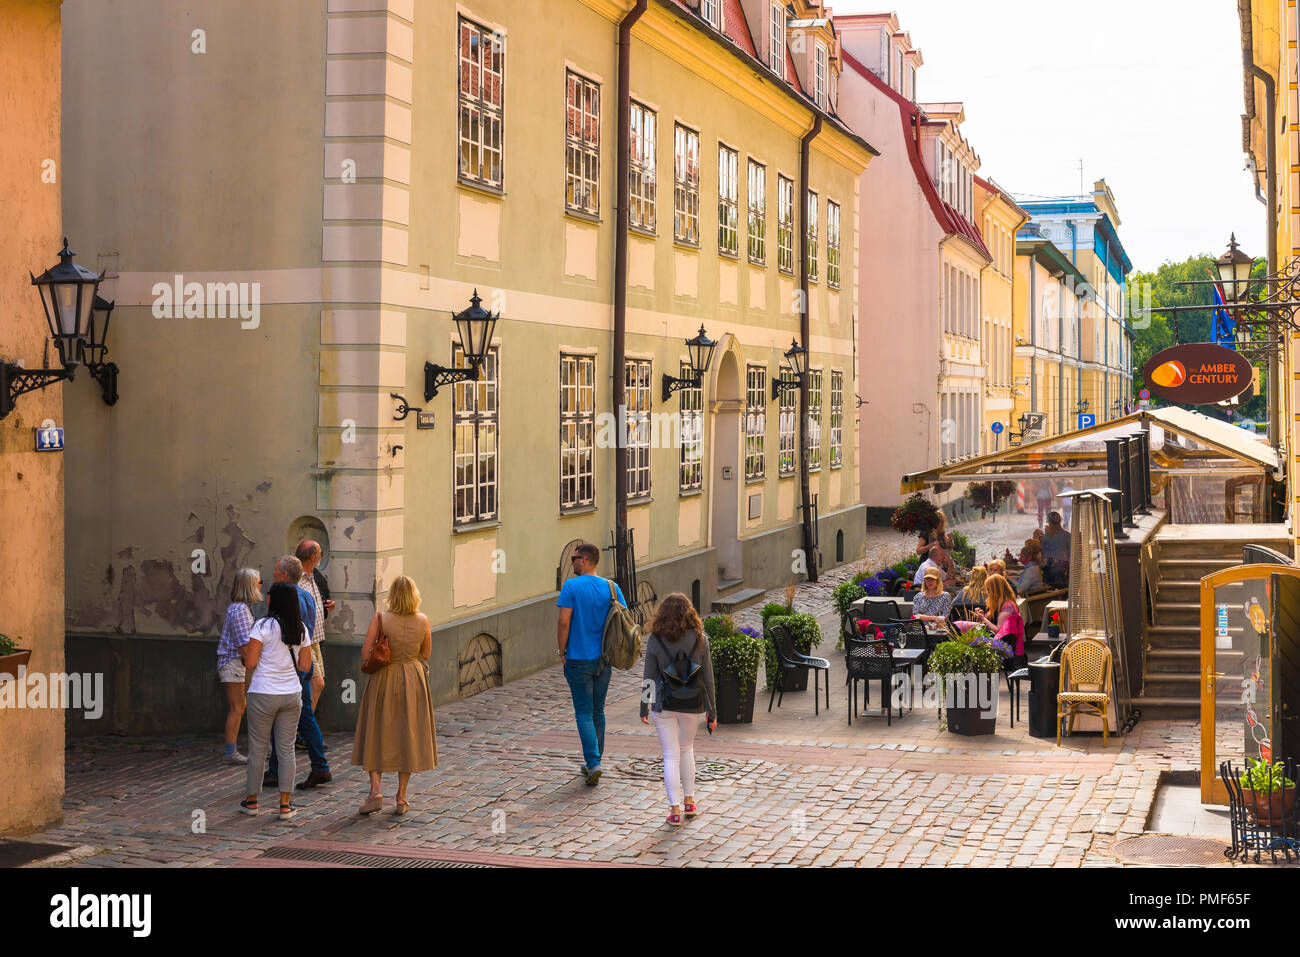 View of tourists sightseeing in Tornu Iela, a popular and historic street in the medieval center of Old Riga, Latvia. - Stock Image